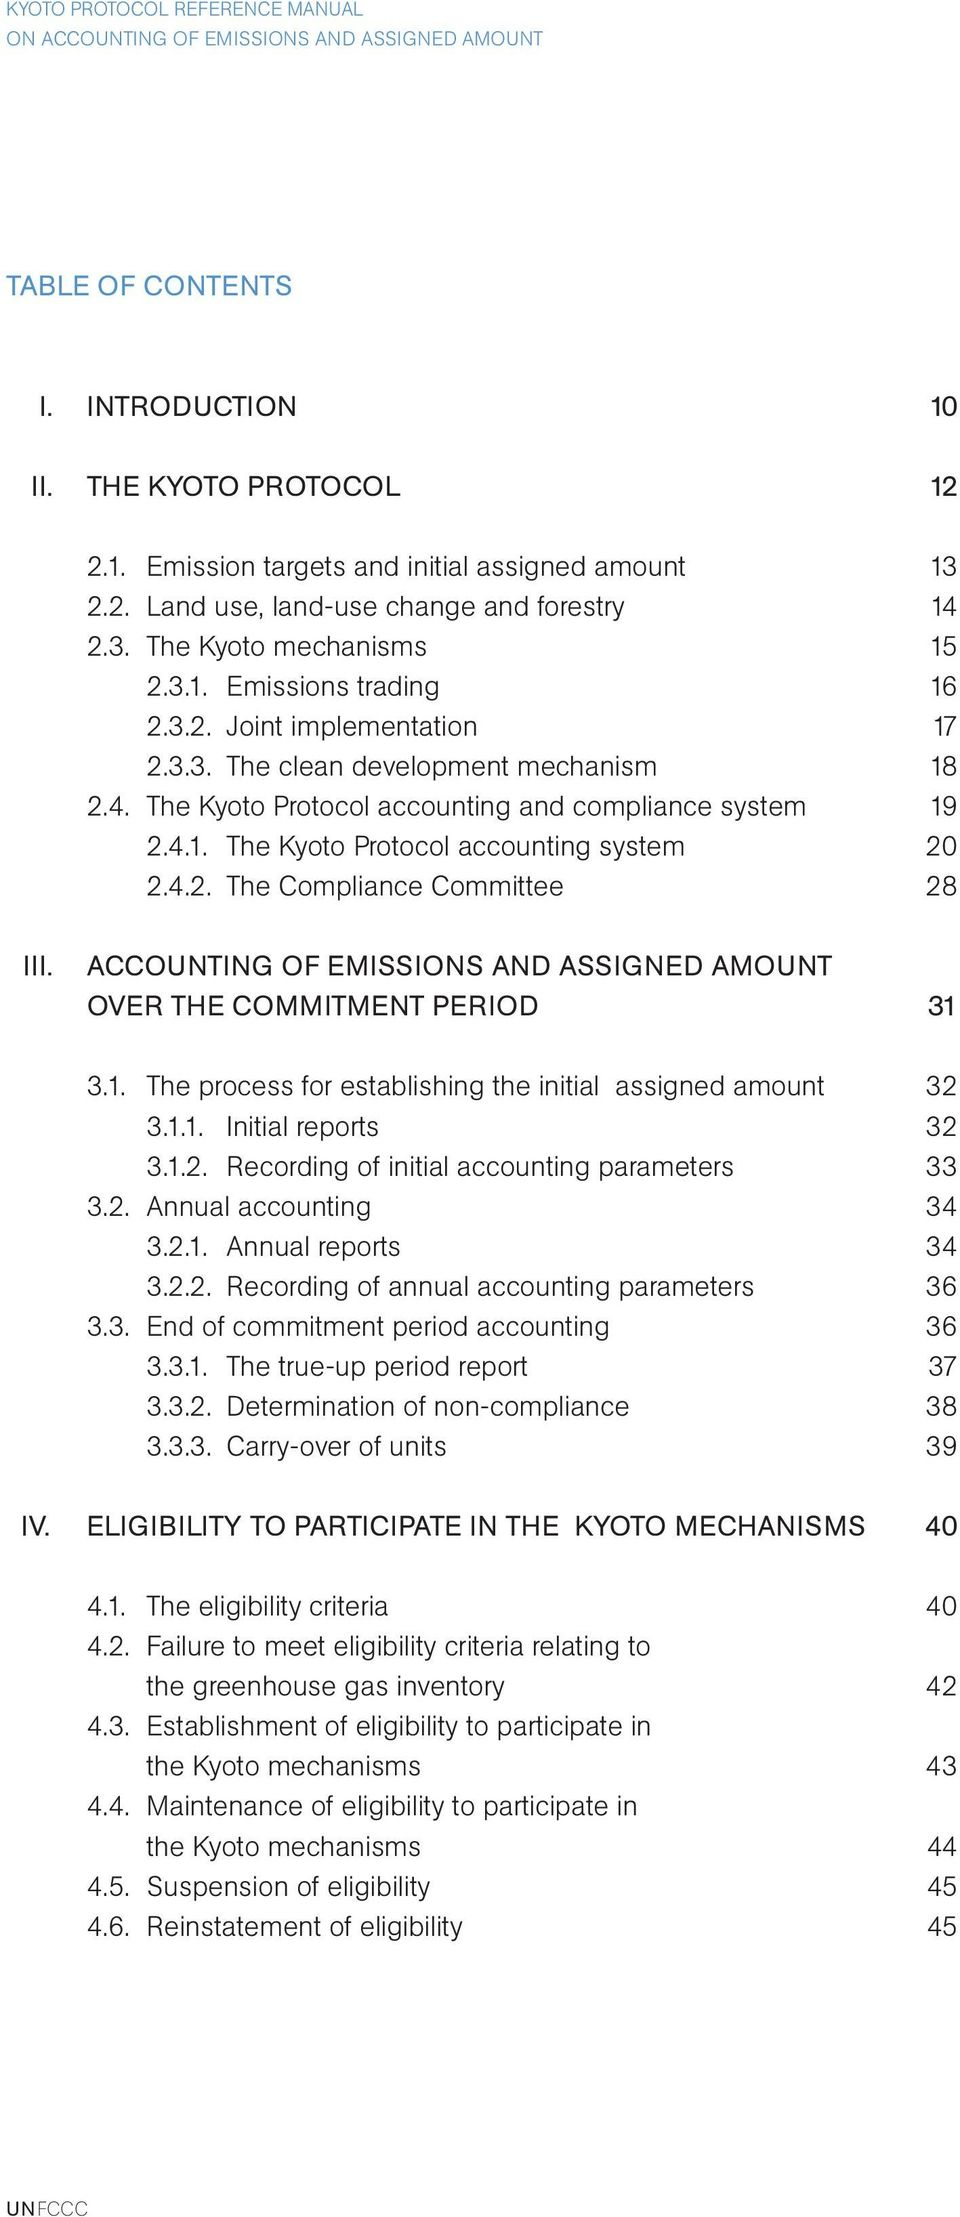 ACCOUNTING OF EMISSIONS AND ASSIGNED AMOUNT OVER THE COMMITMENT PERIOD 31 3.1. The process for establishing the initial assigned amount 32 3.1.1. Initial reports 32 3.1.2. Recording of initial accounting parameters 33 3.